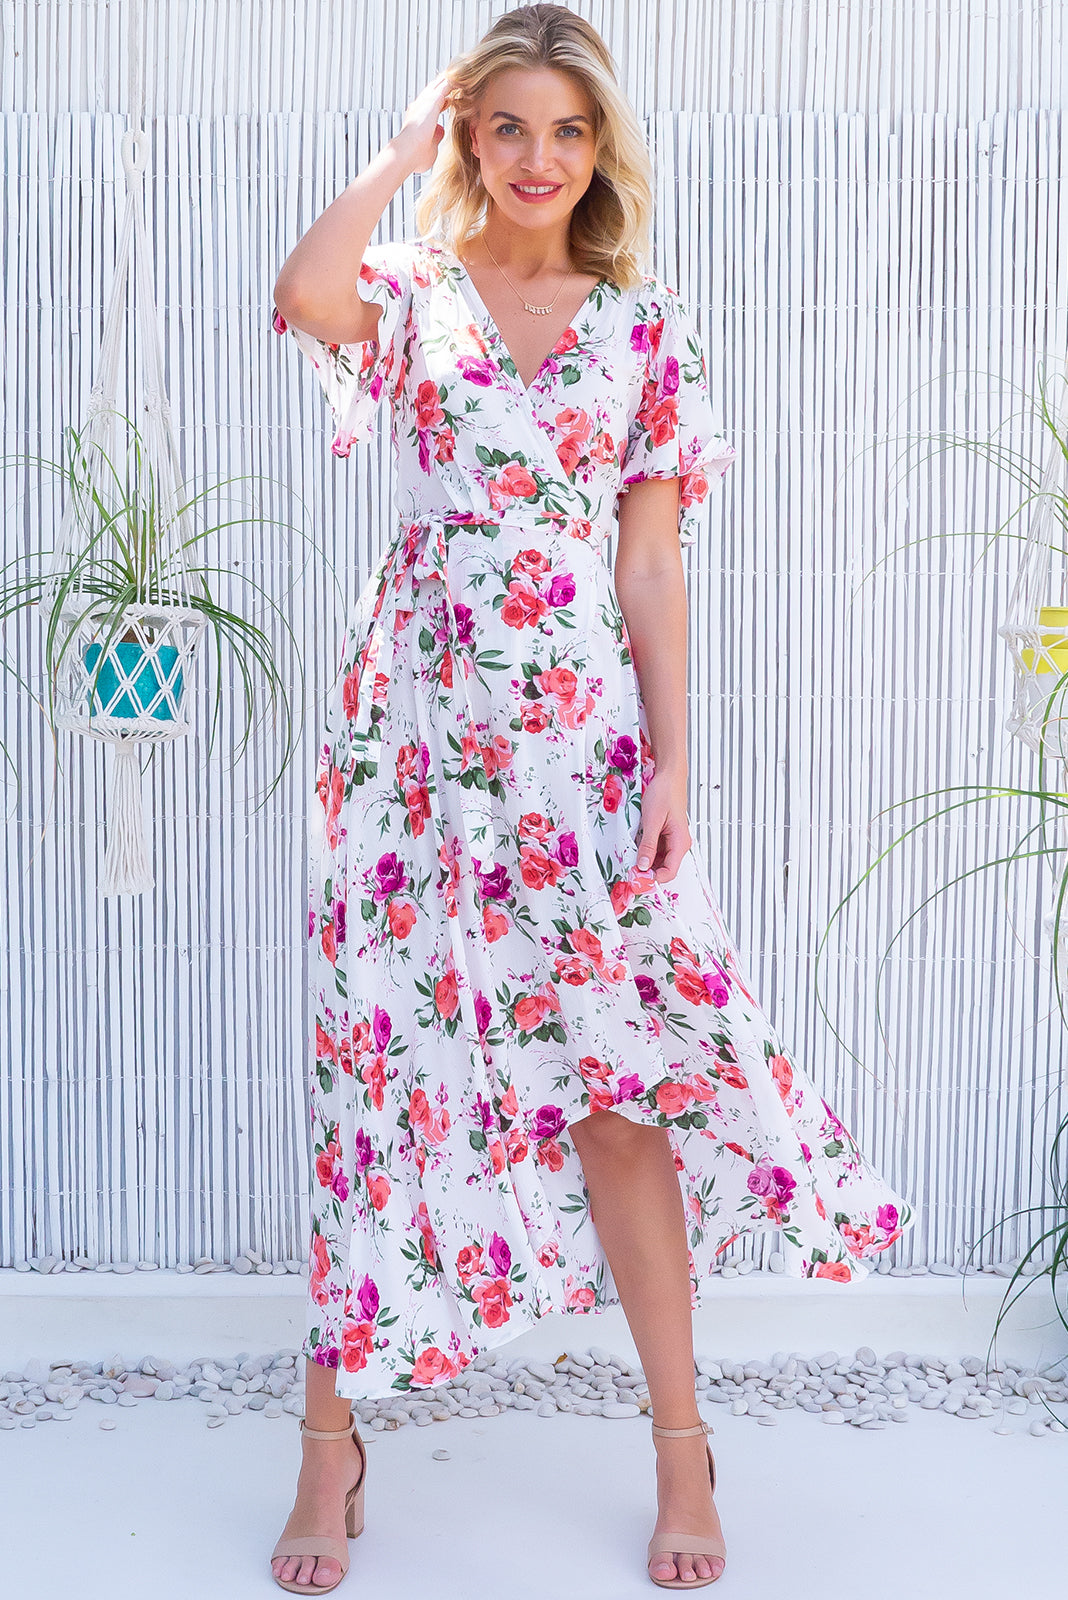 A romantic Dress has arrived, the Cinnamon York Rose White Maxi Wrap Dress features adjustable wrap tie waist, scoop hem shorter at the front and 100% crinkle texture rayon in white base with romantic pink rose print.